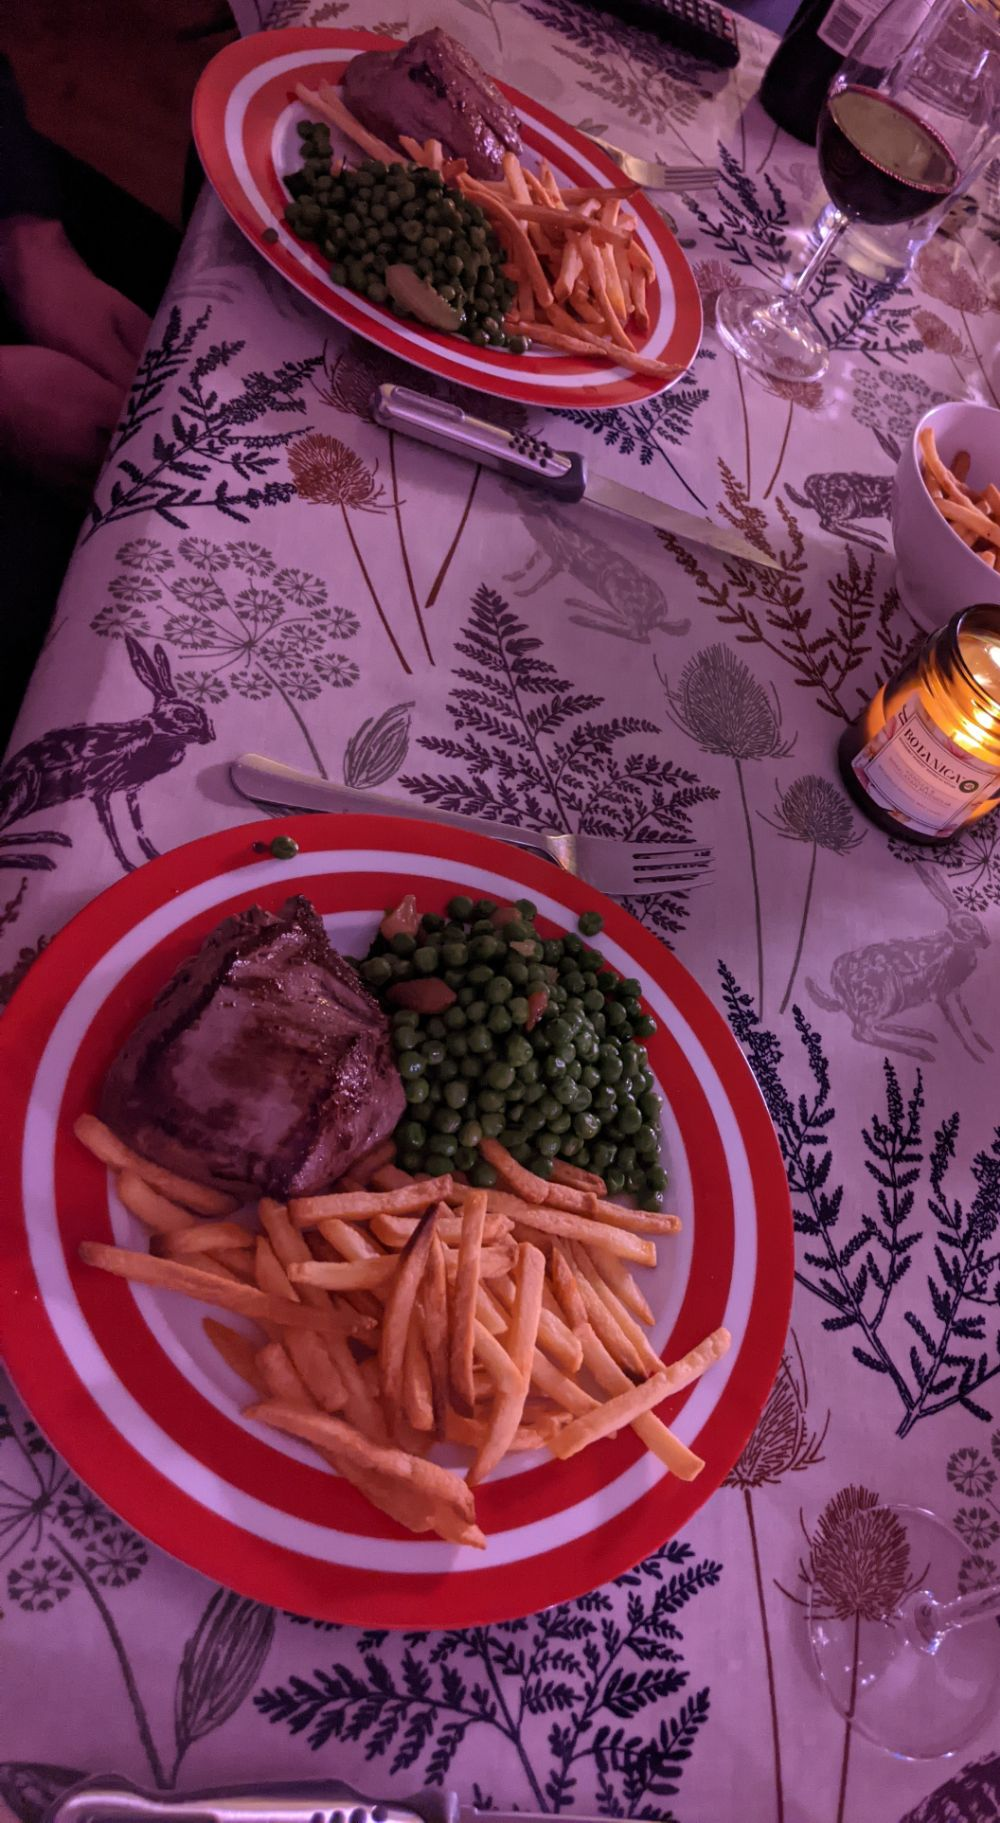 A slanted photo of a table set with two plates with a fillet steak (cooked blue / very very rare), minted peas, french fries, a bowl of overflow fries, and a large glass of Malbec